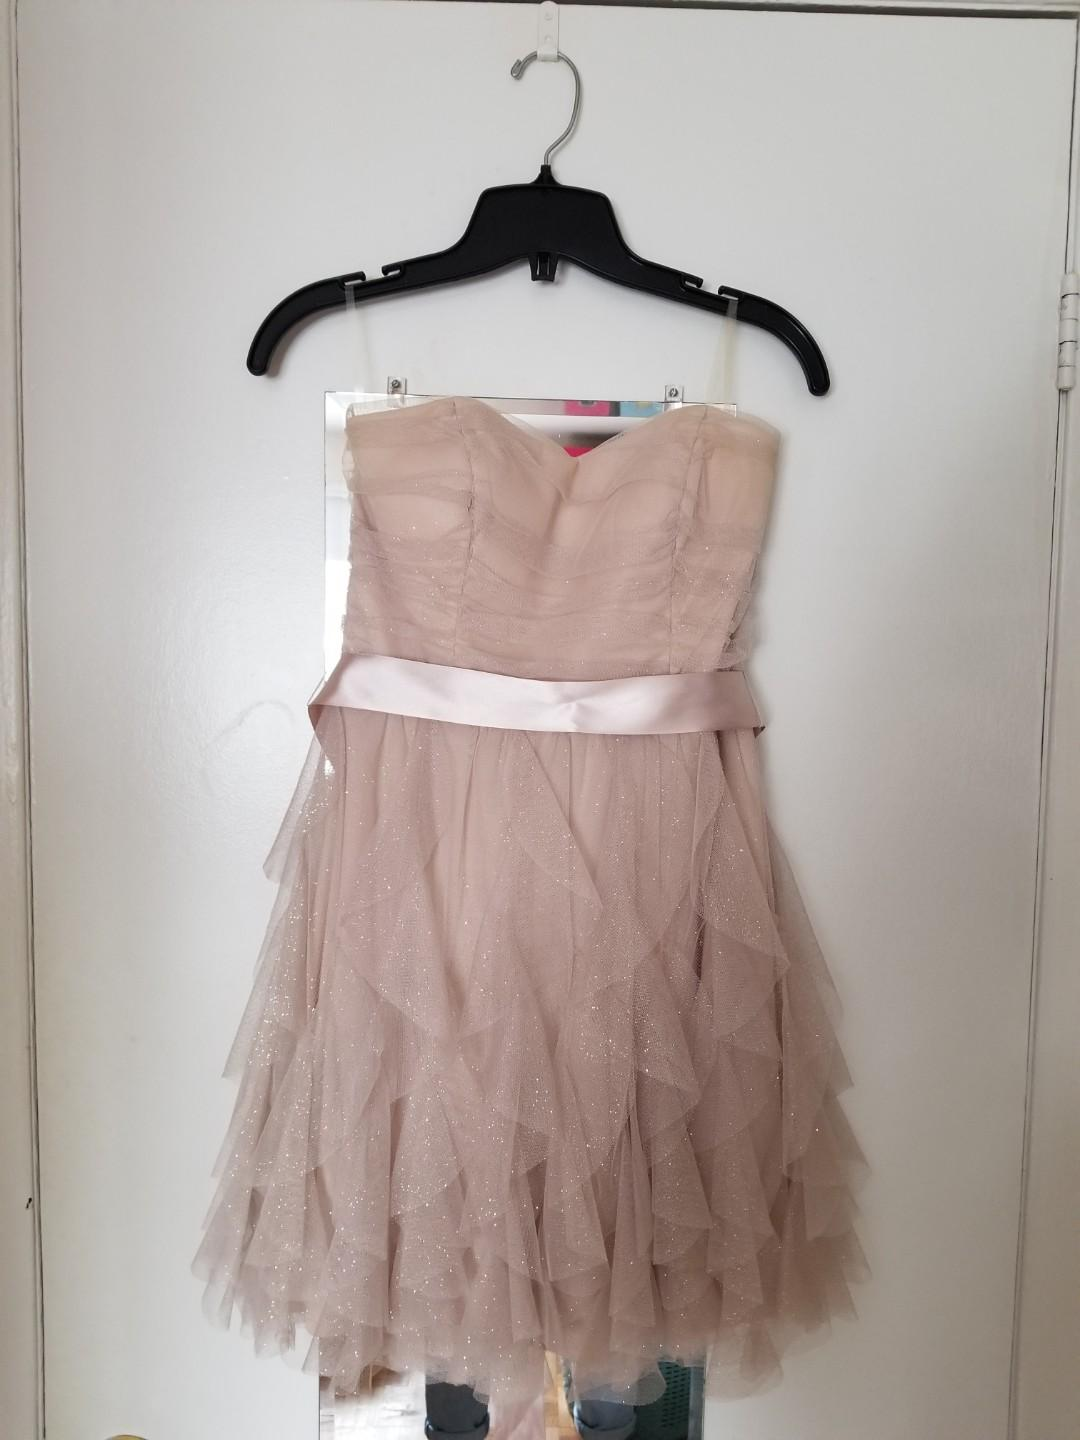 Le Château, size 7, short, strapless, sparkly, ruffle, chiffon, prom/grad dress